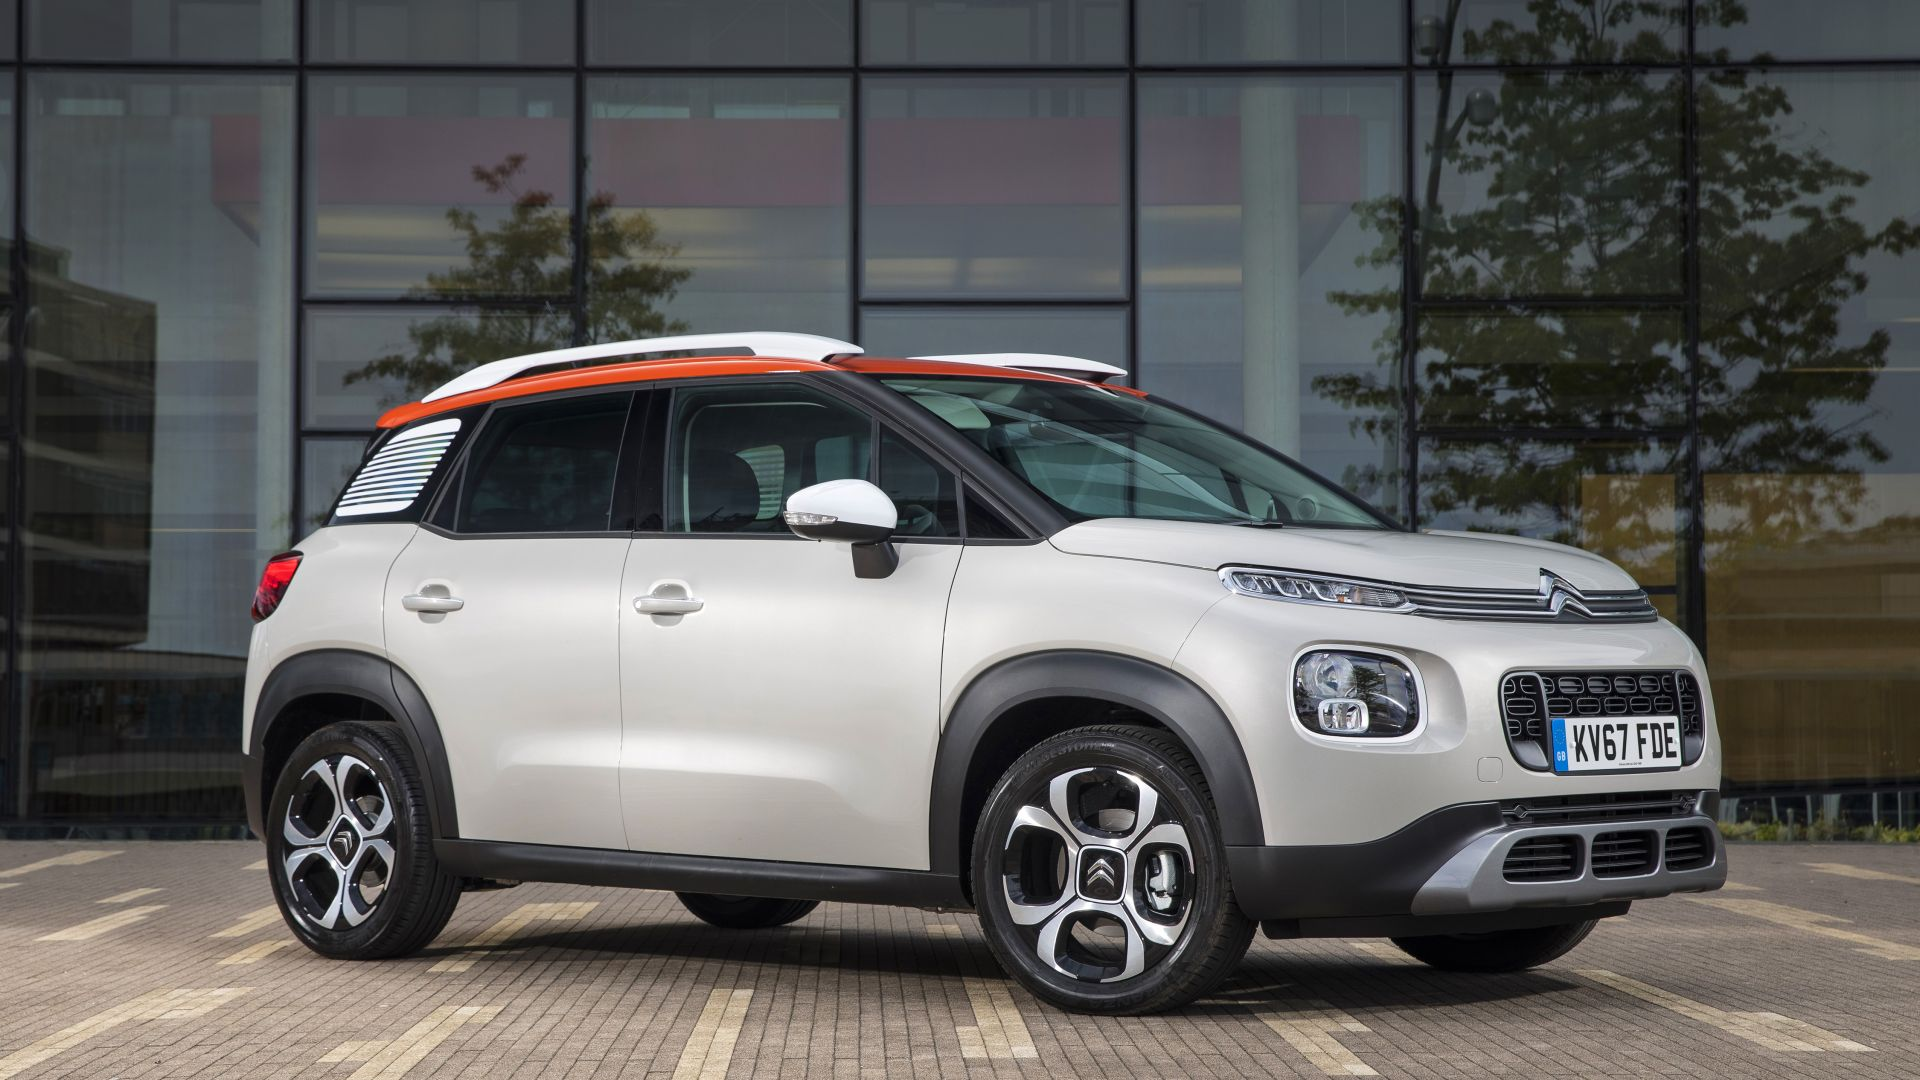 wallpaper citroen c3 aircross 2018 cars 4k cars bikes 16954. Black Bedroom Furniture Sets. Home Design Ideas